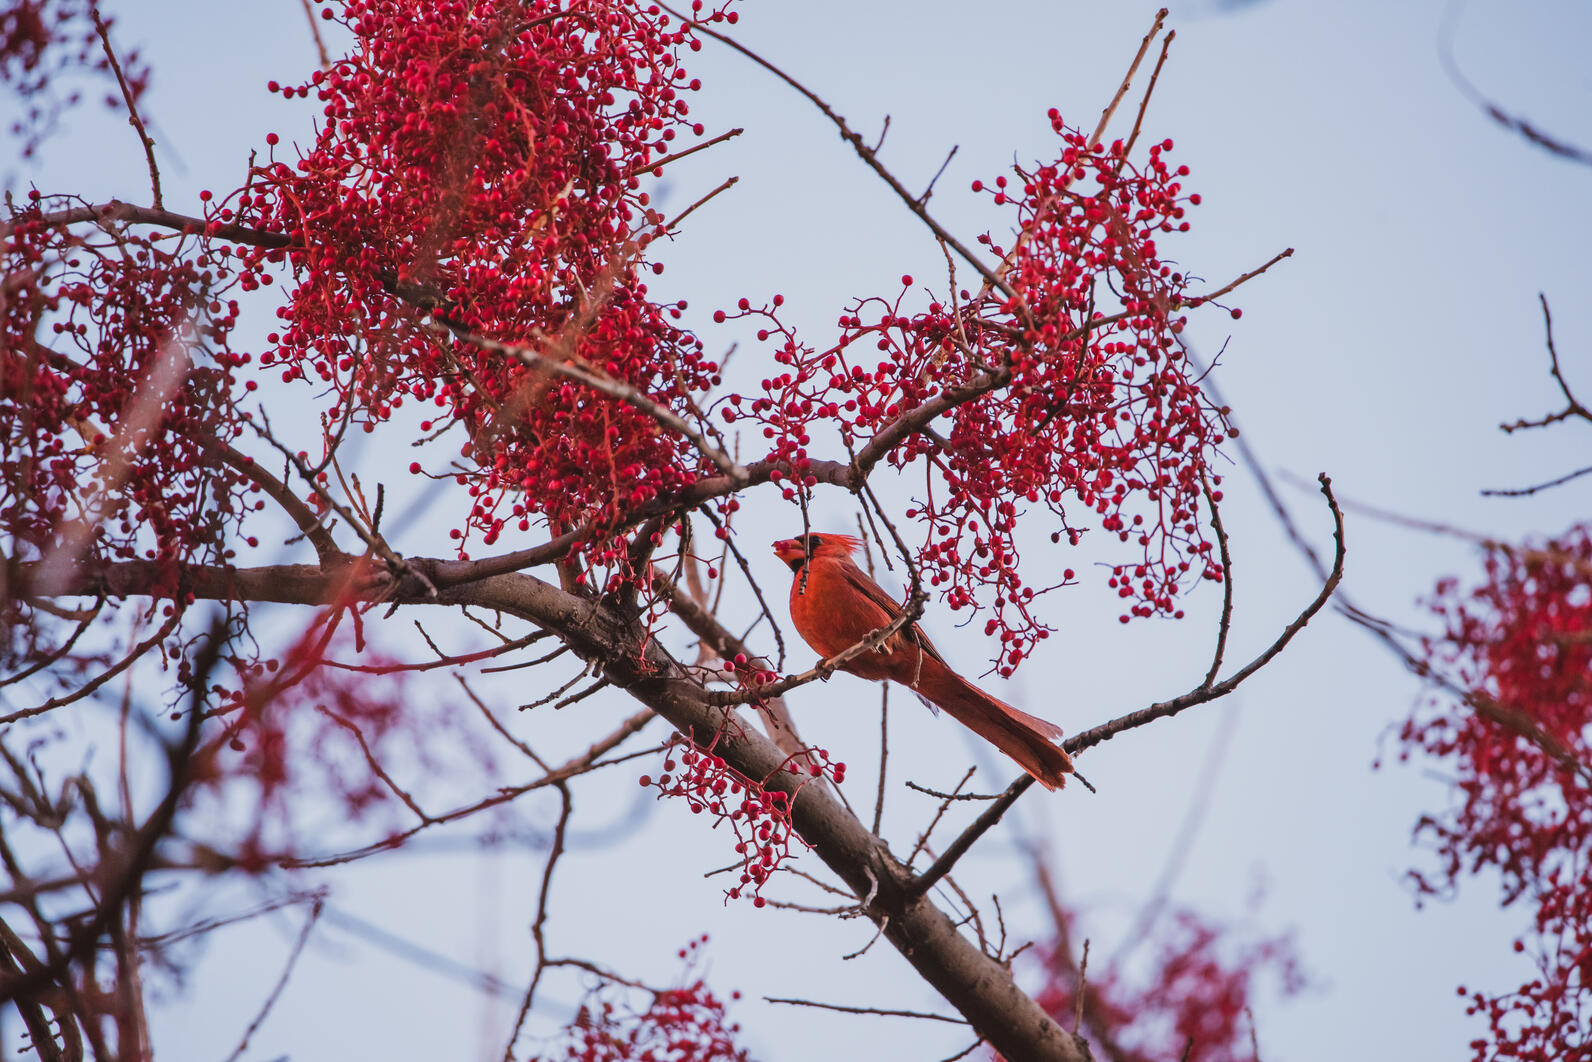 Northern Cardinal perrech on a tree branch